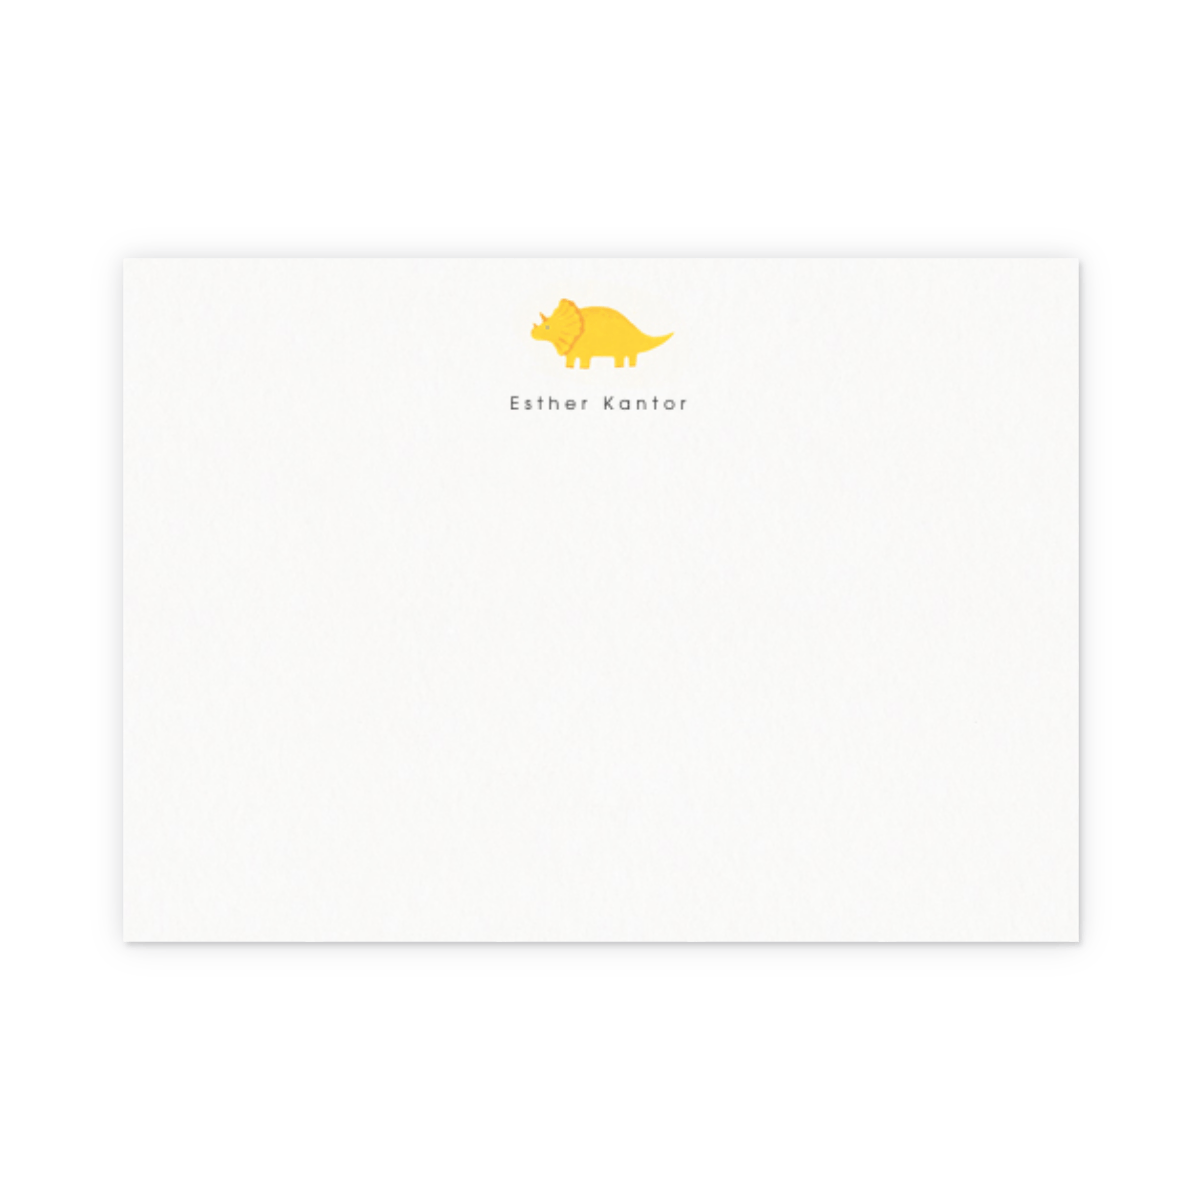 Https%3a%2f%2fwww.papier.com%2fproduct image%2f7169%2f10%2ftriceratops 1766 front 1462975310.png?ixlib=rb 1.1